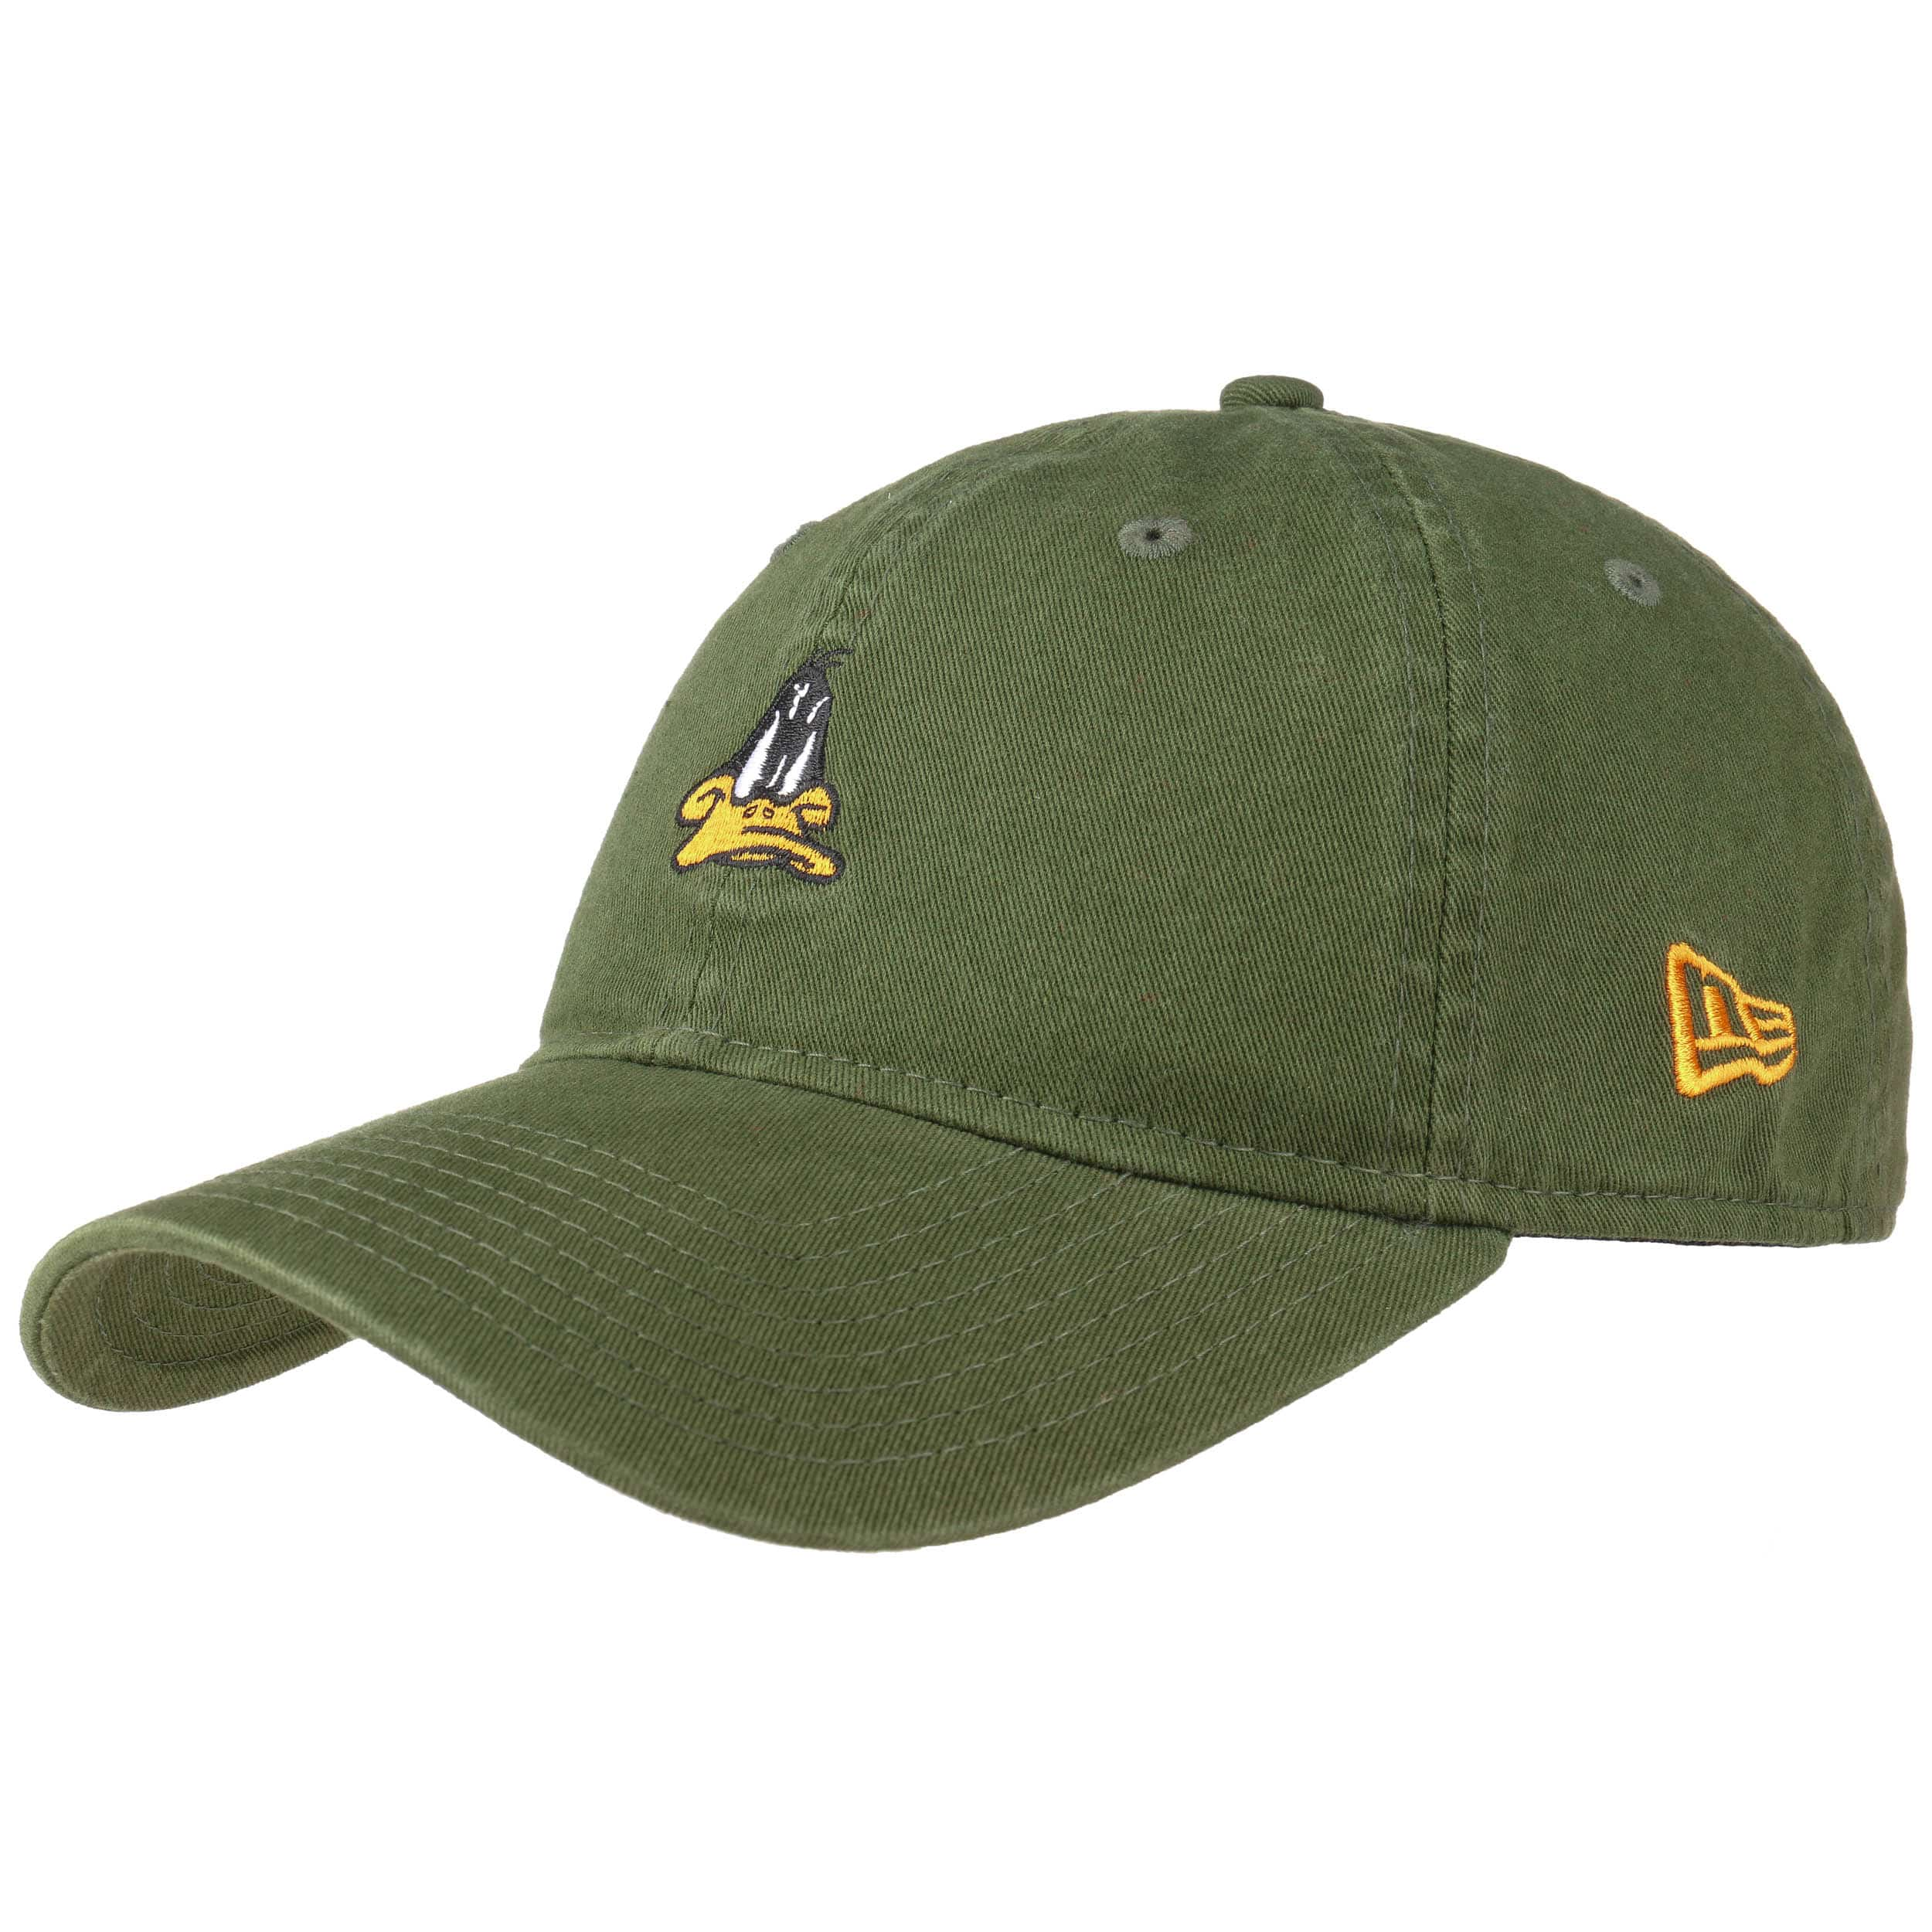 ... 9Forty Looney Tunes Daffy Duck Cap by New Era - olive 6 17827156d26